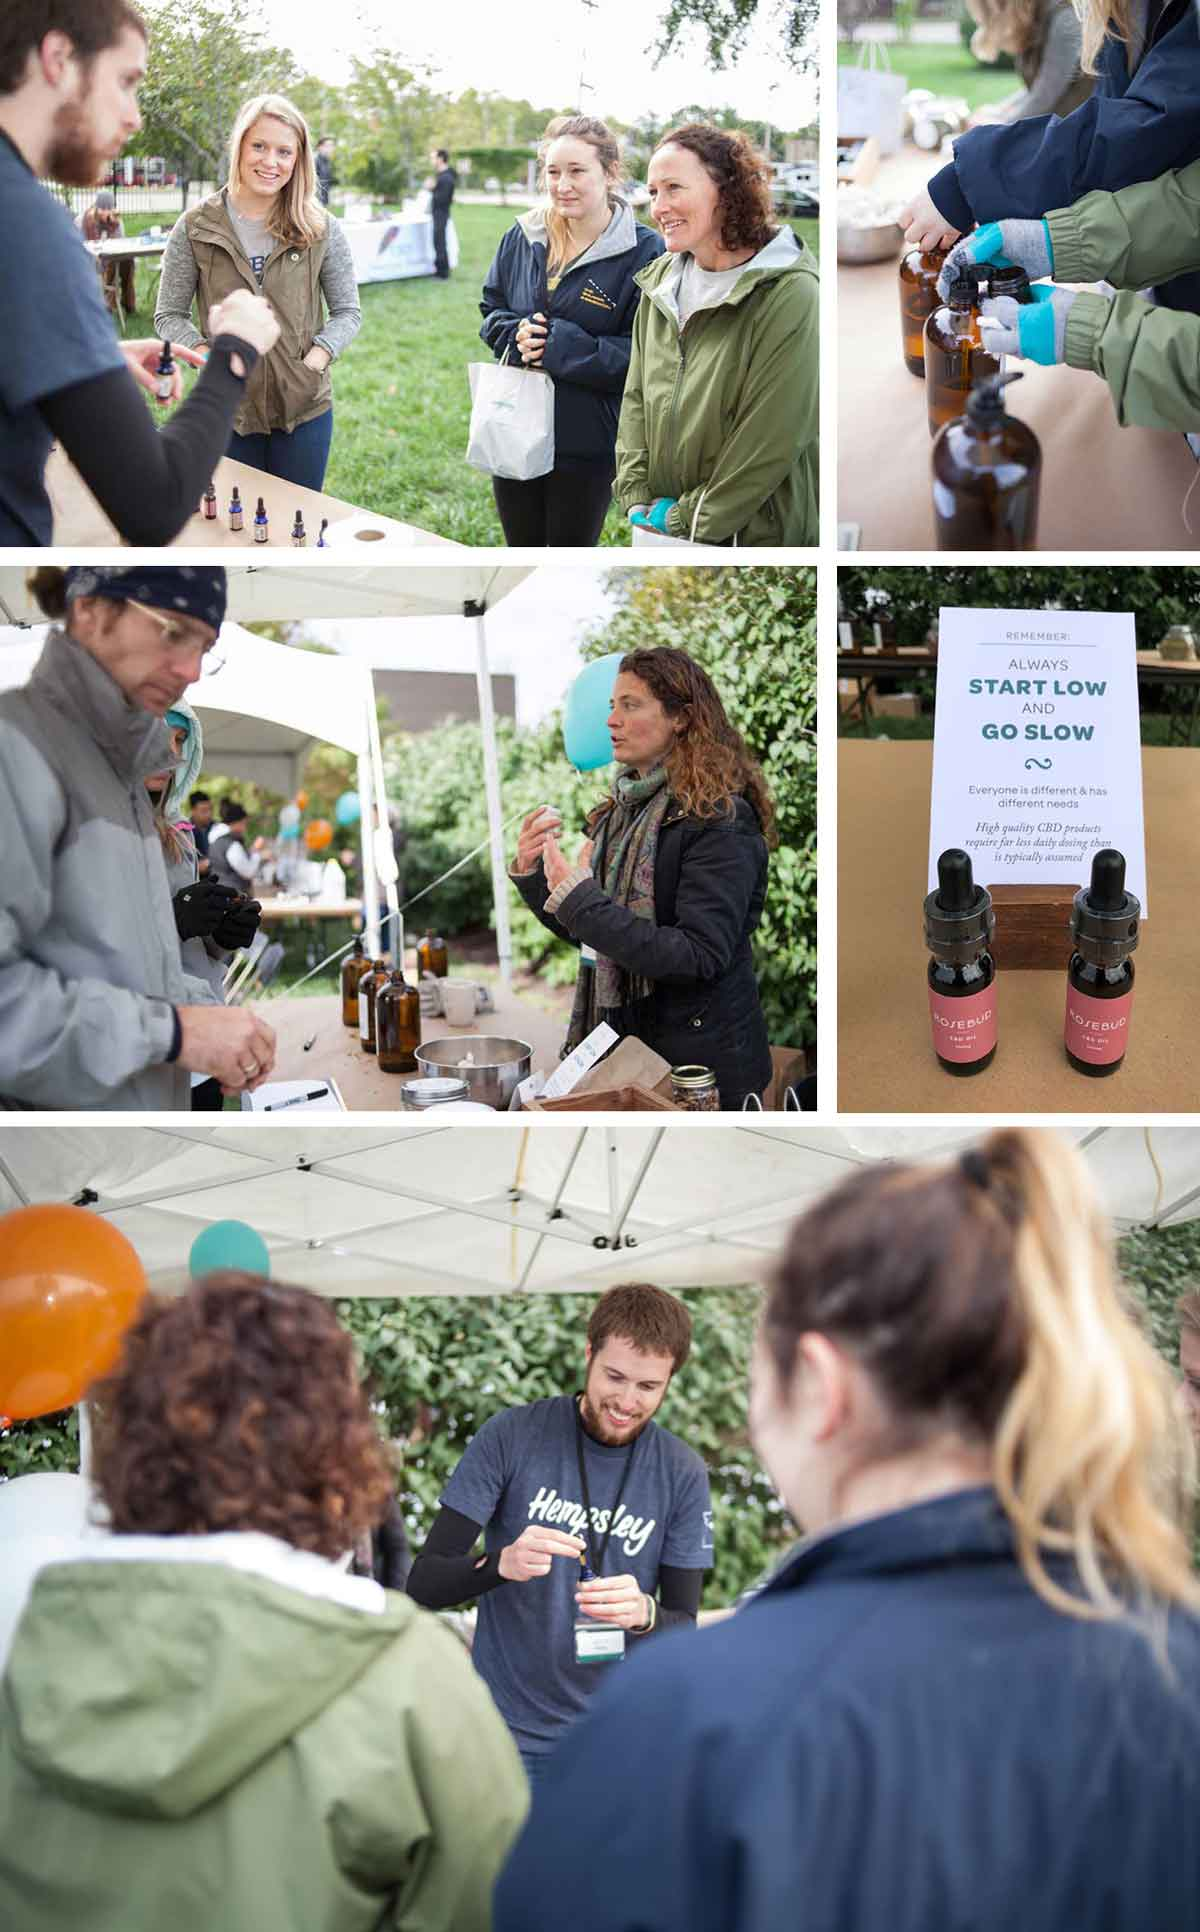 Tincture testing and making station at Hempsley's Event in Missouri